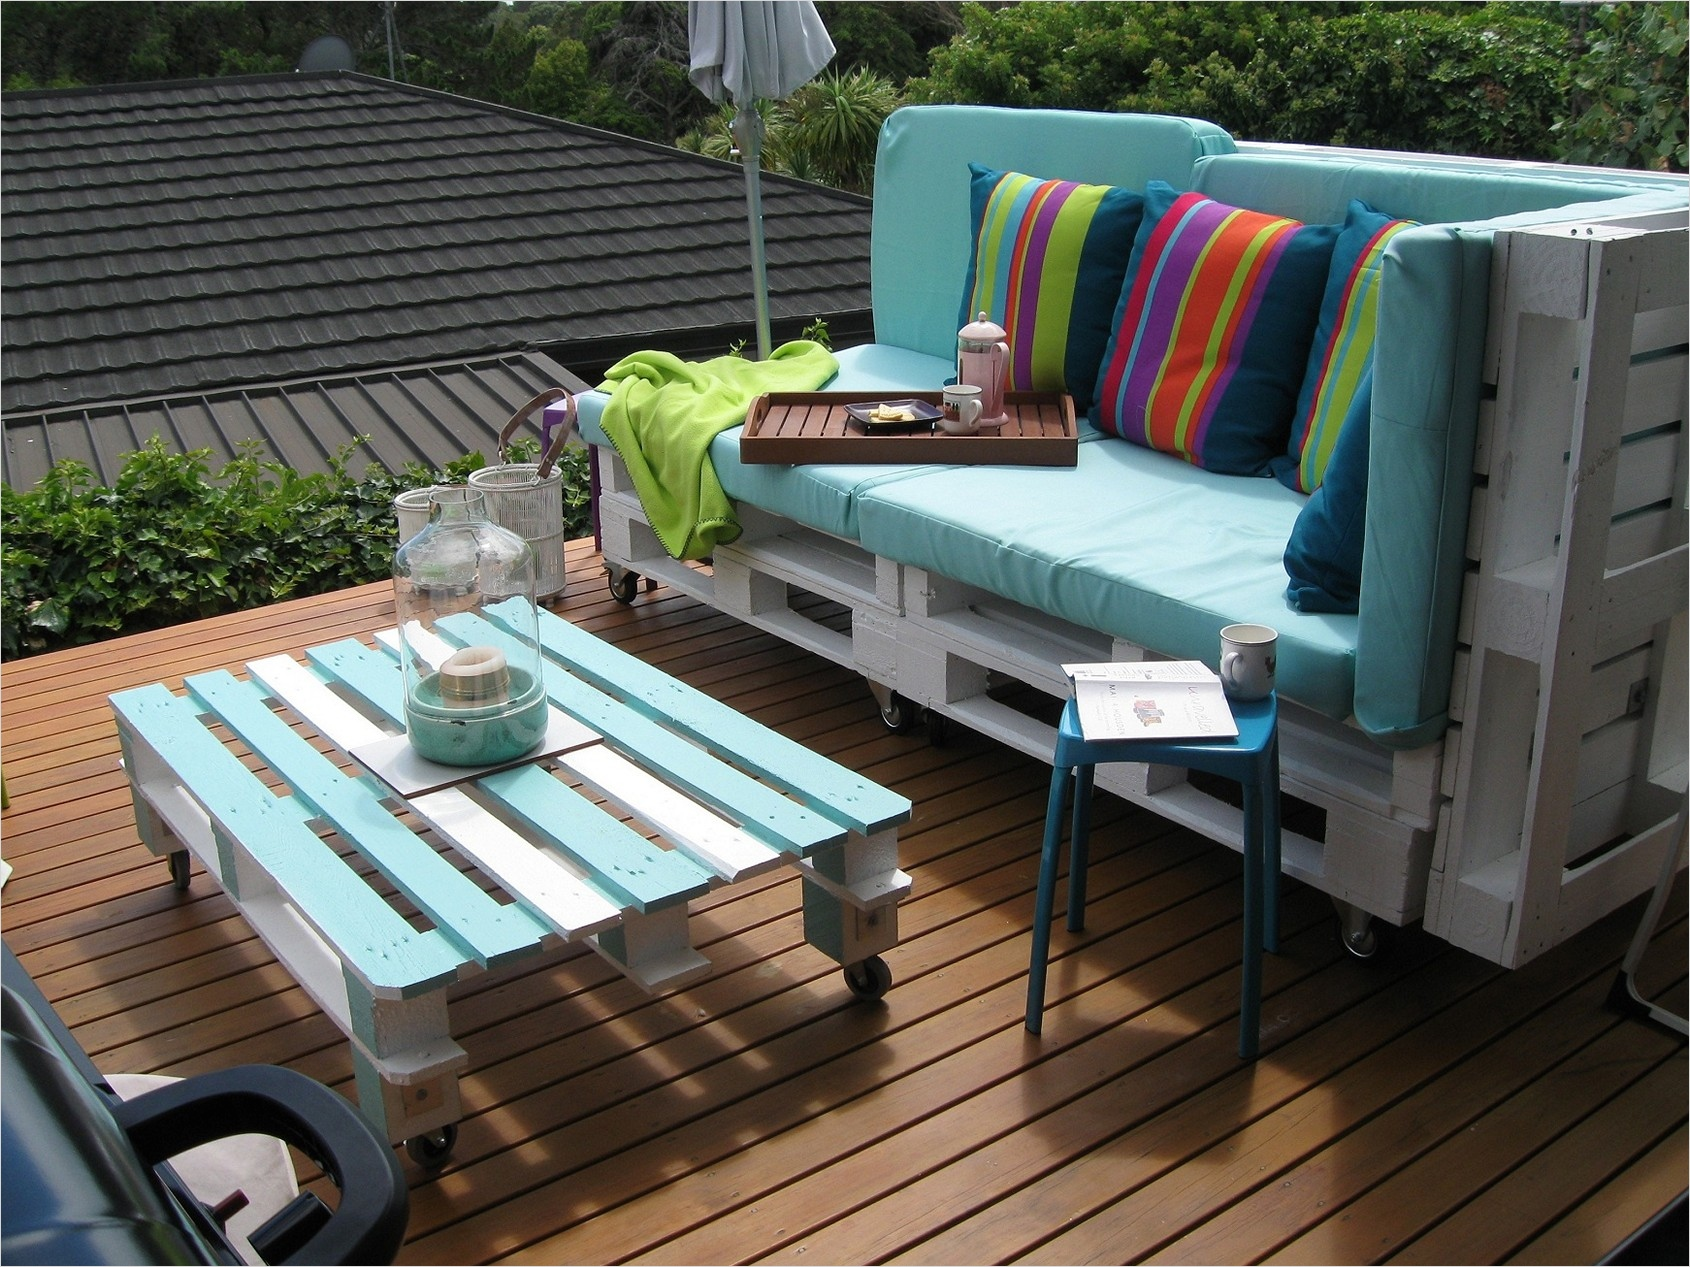 40 Diy Ideas Outdoor Furniture Made From Pallets 38 Pallet Outdoor Furniture Practical yet Chic Ideas 8